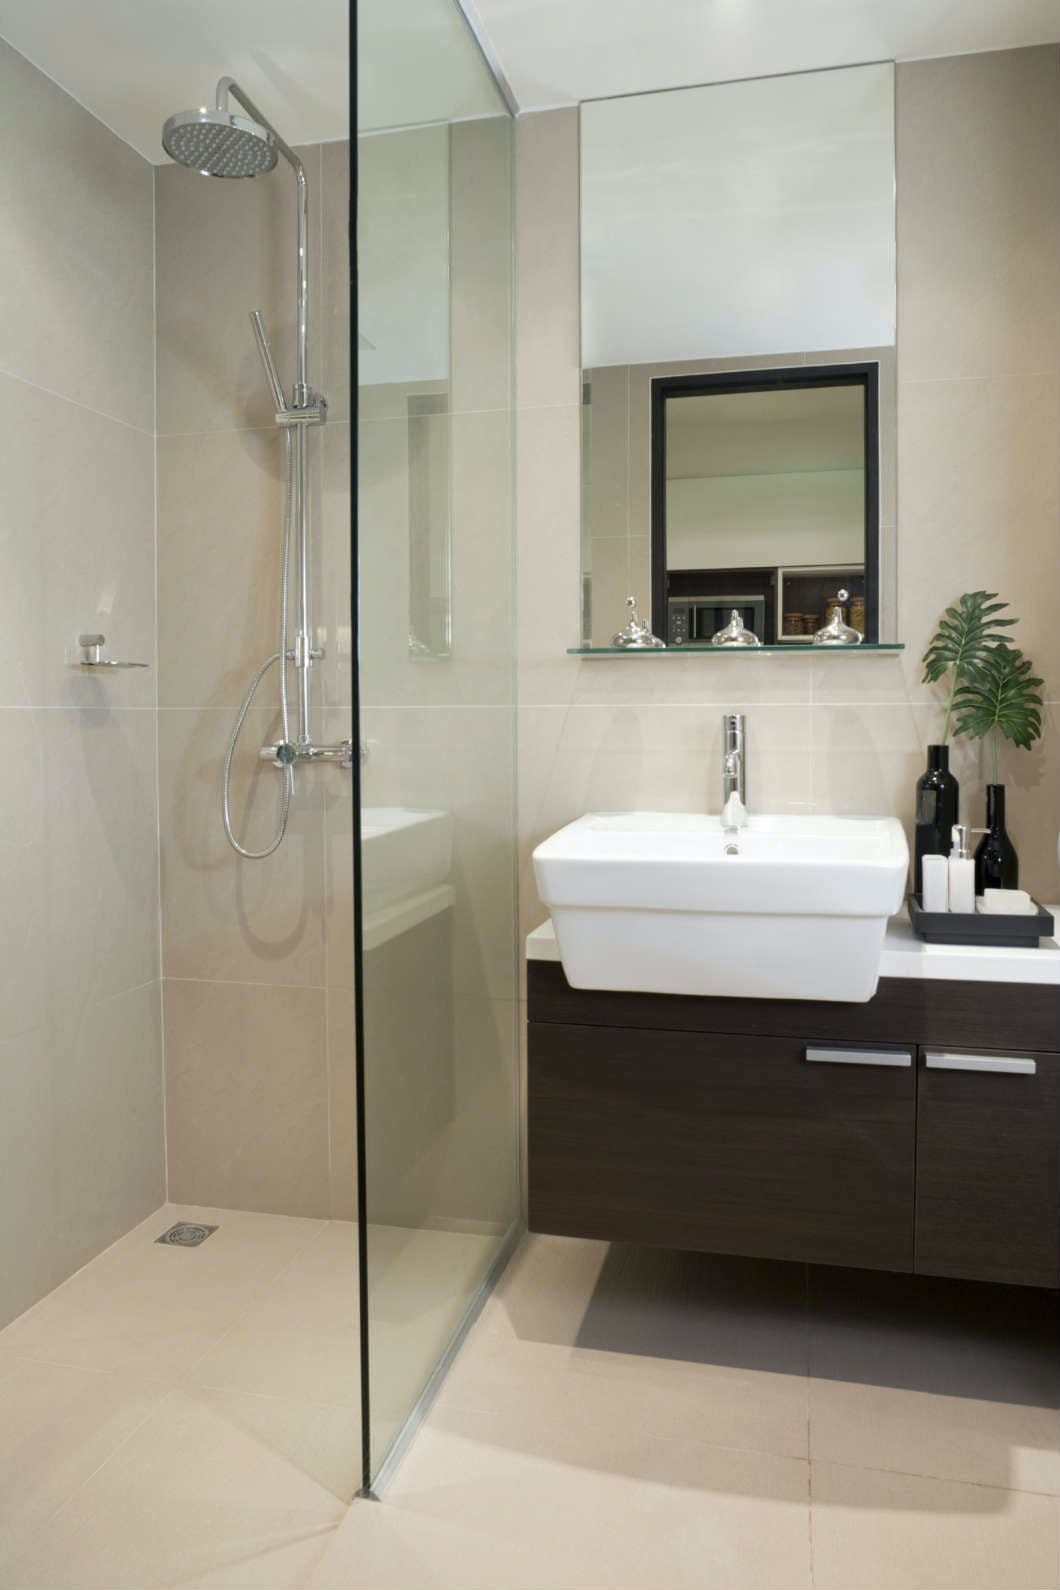 Dream En Suite Bathrooms Designed Fit By More Bathrooms